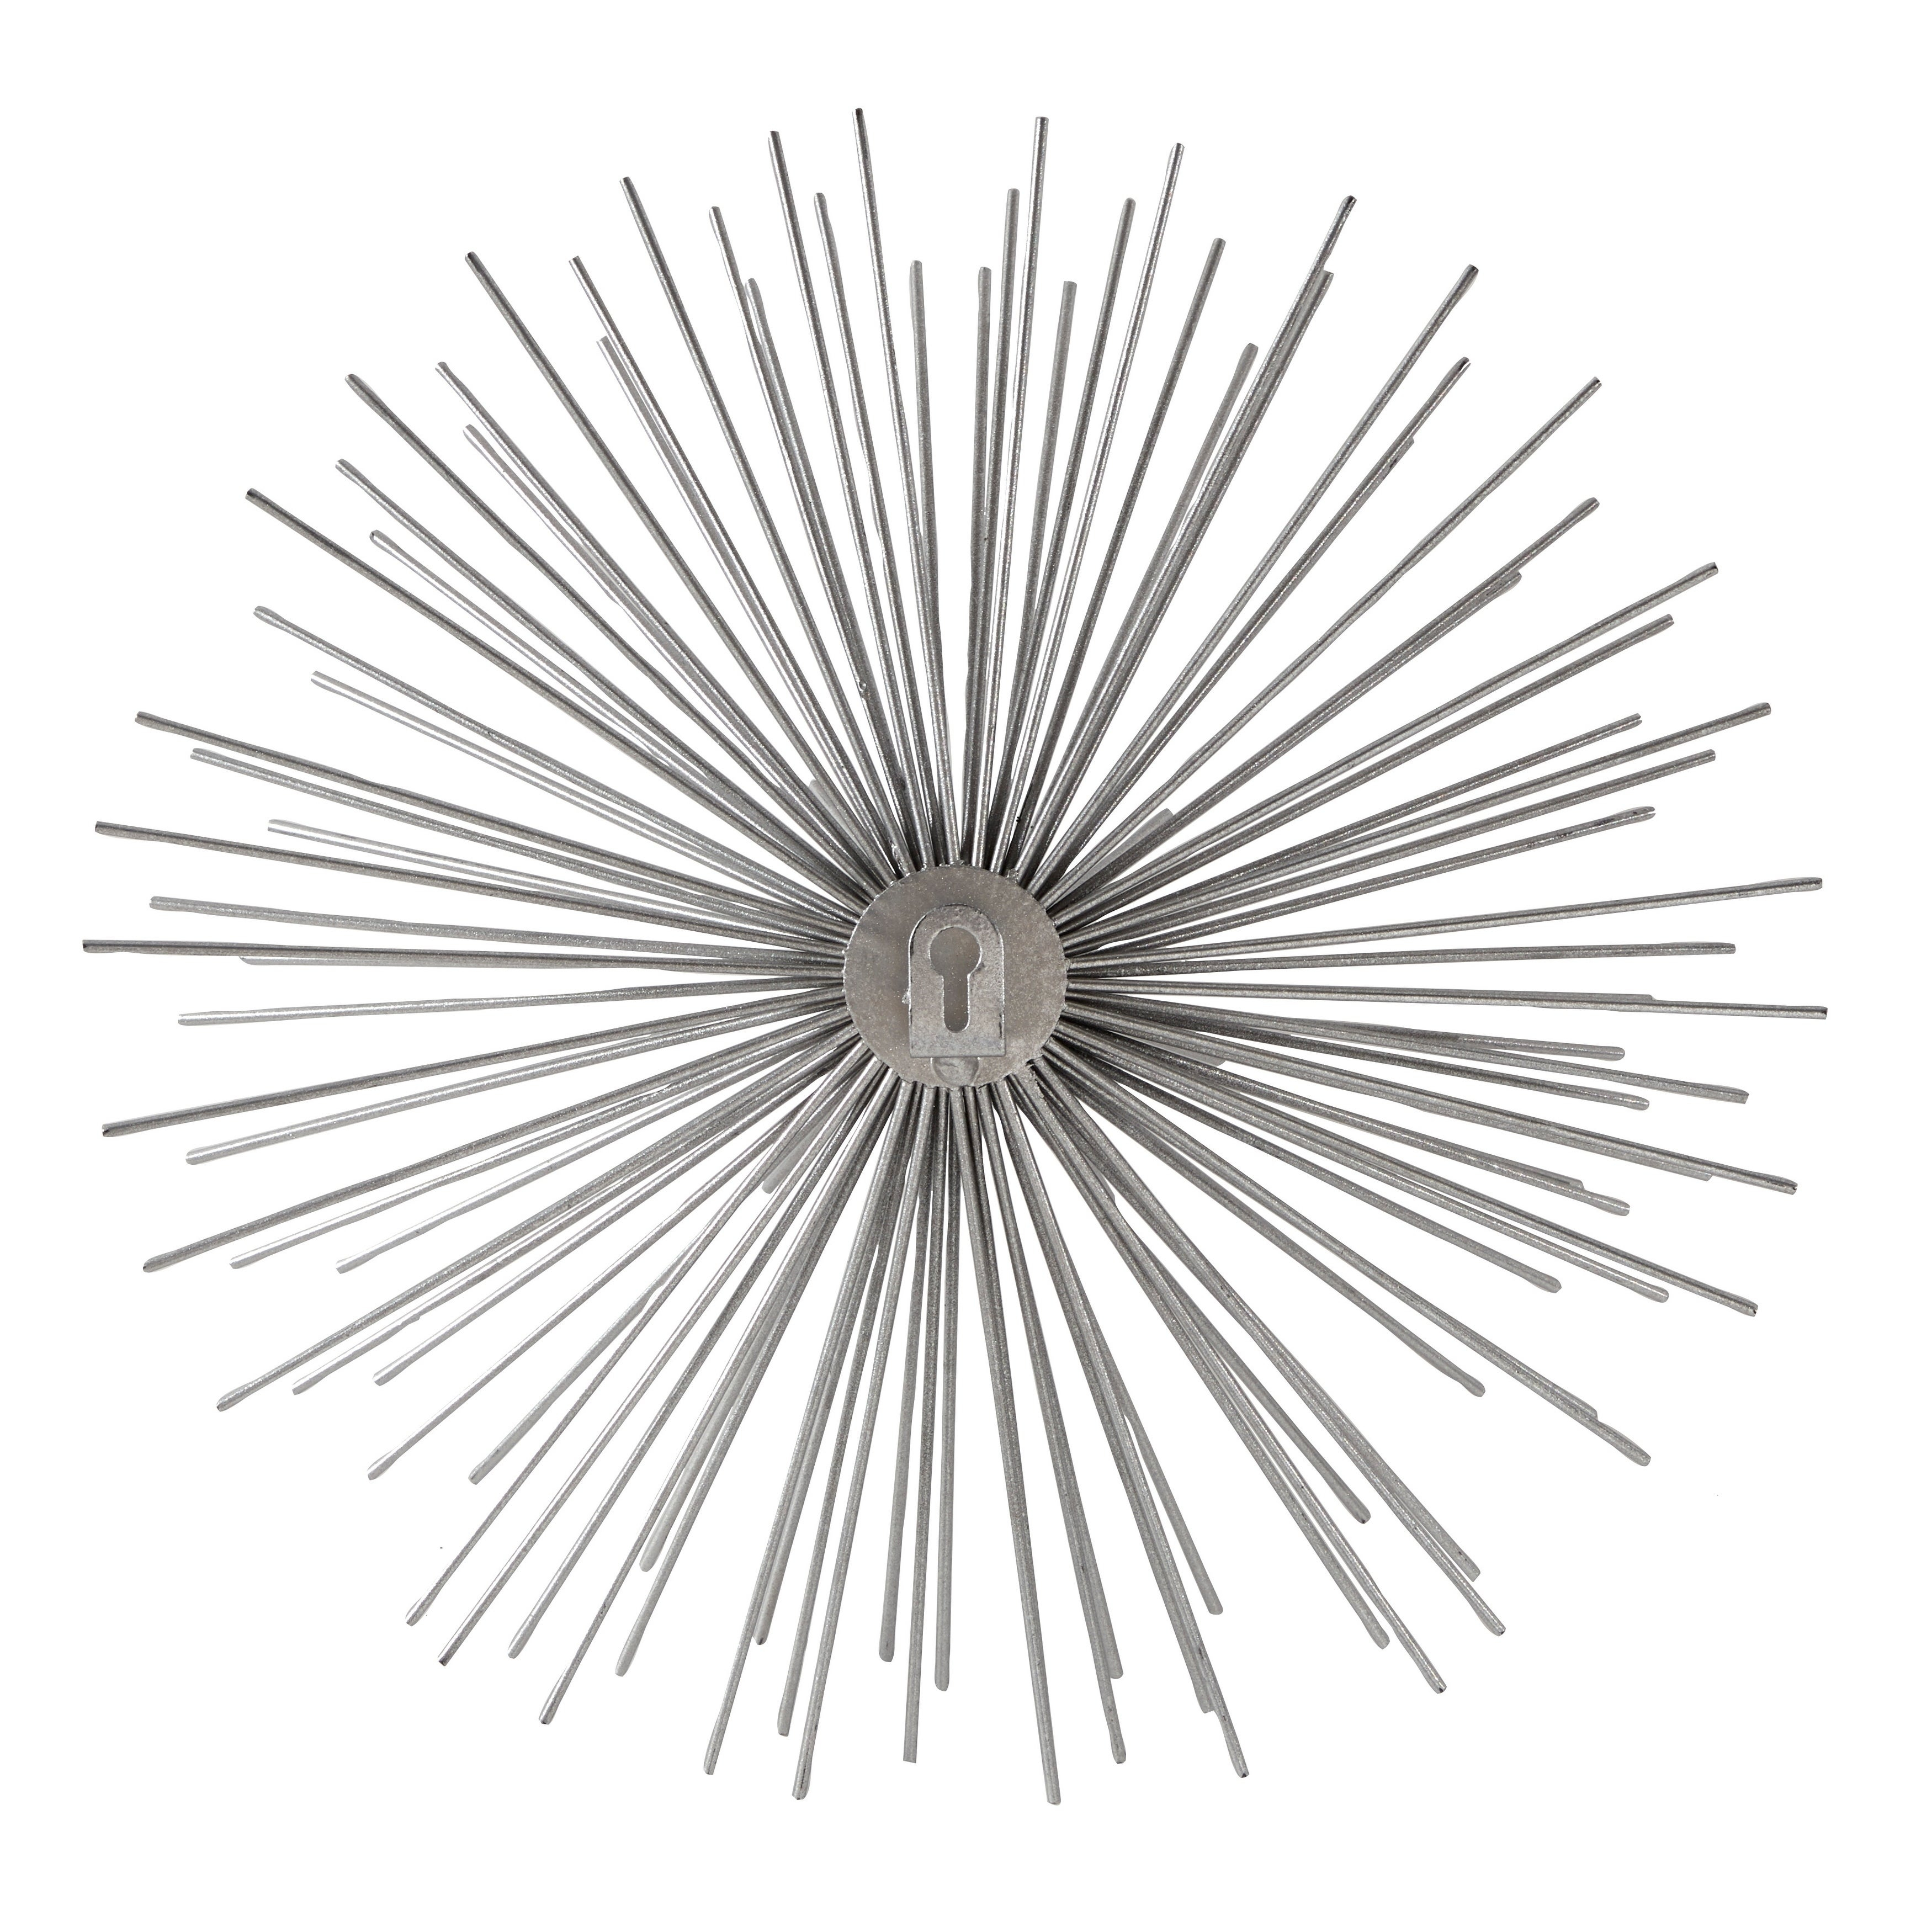 Contemporary 3d Silver Metal Starburst Wall Decor Sculptures Set Of 3 For Set Of 3 Contemporary 6, 9, And 11 Inch Gold Tin Starburst Sculptures (View 11 of 30)